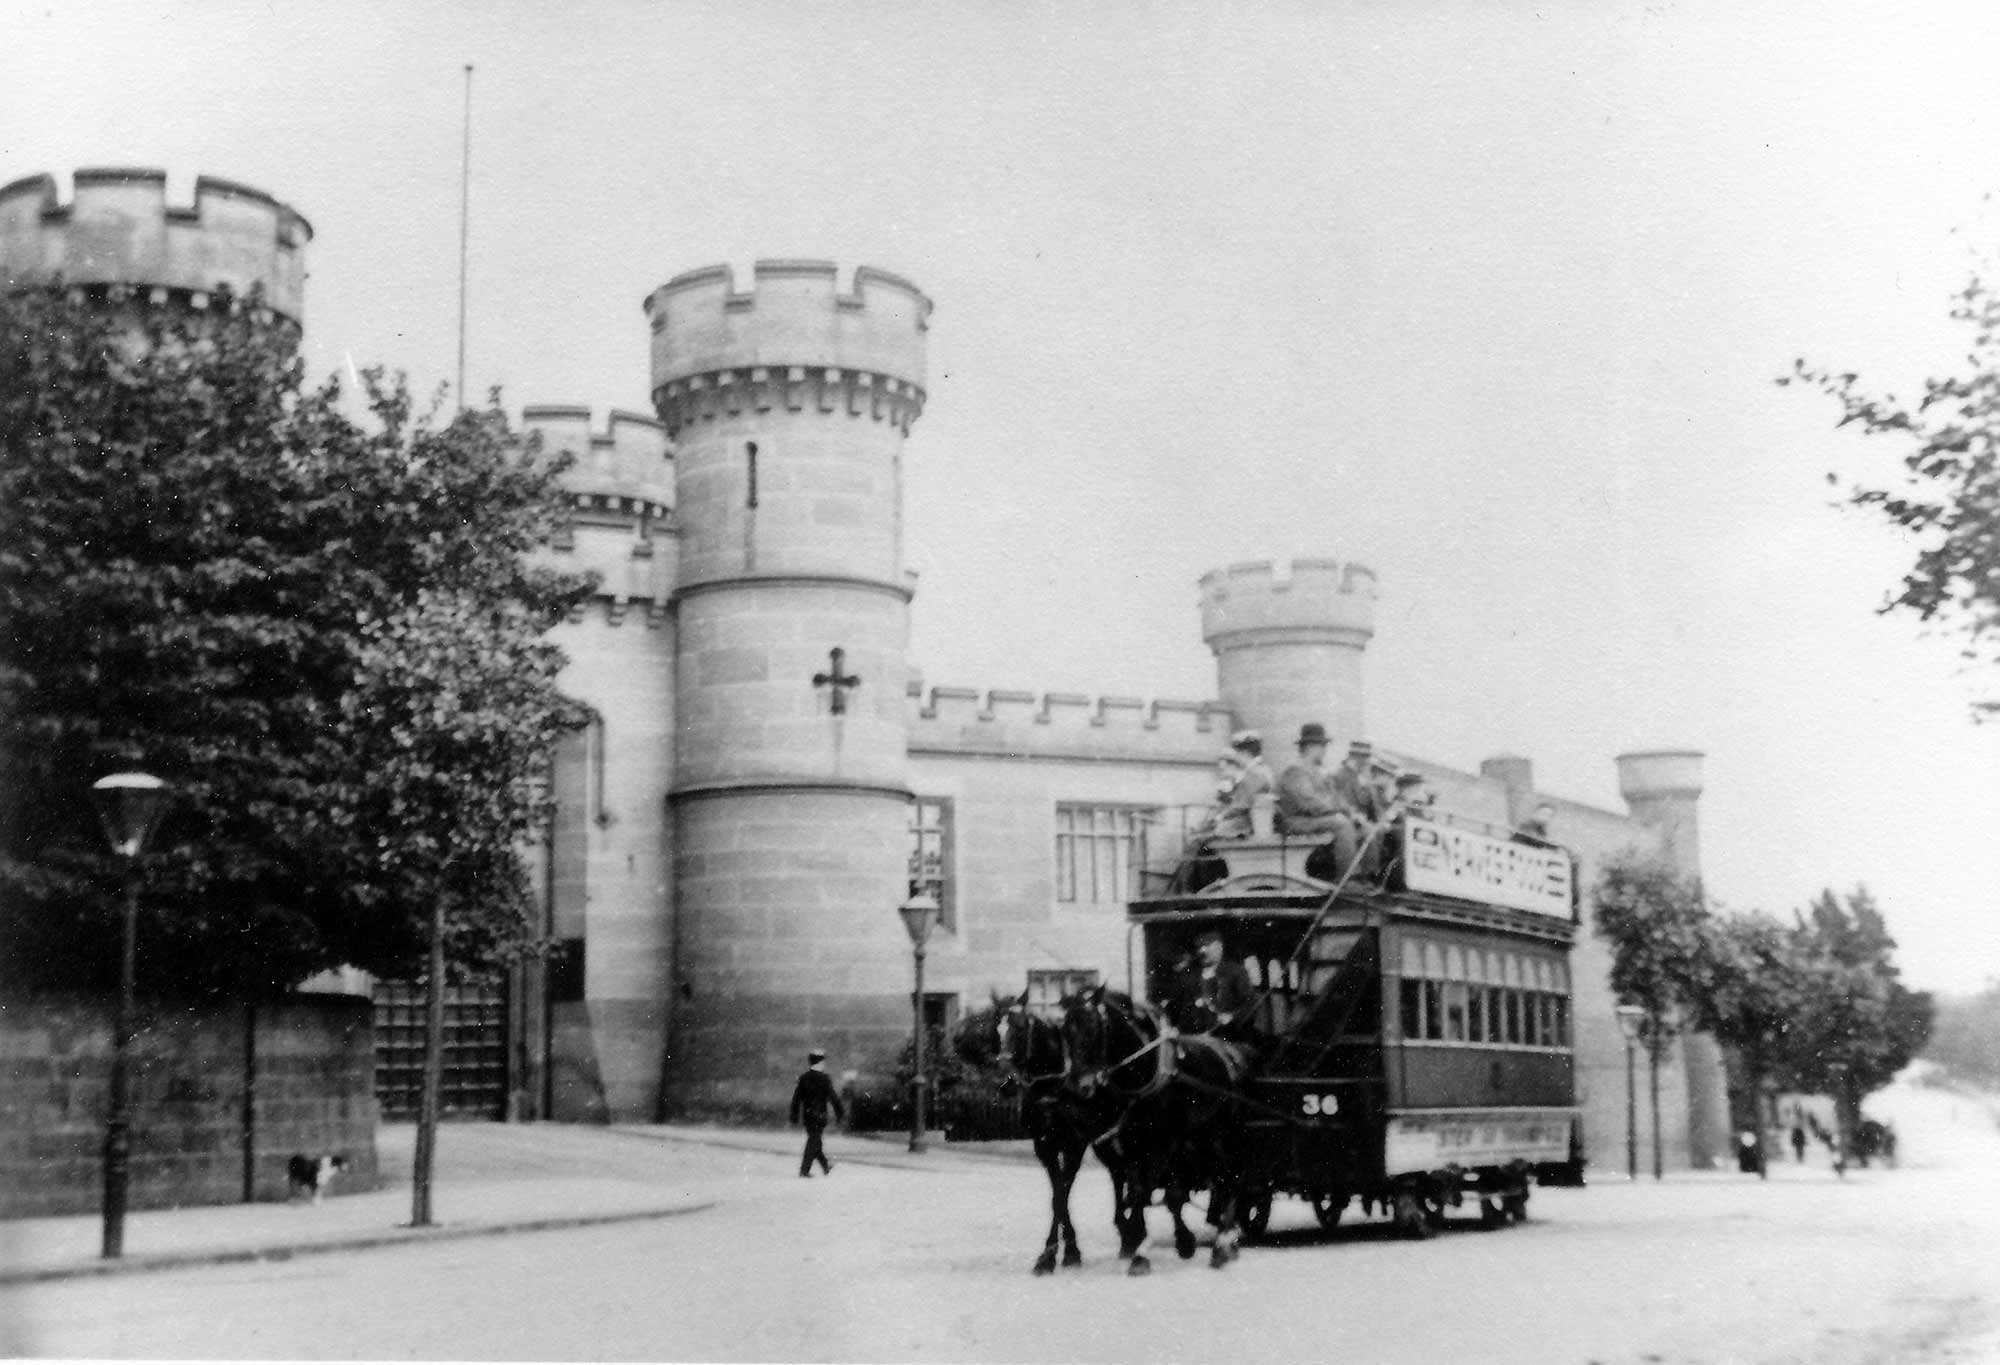 A horse drawn tram (the No. 36) passing by the County Gaol, c.1890 -